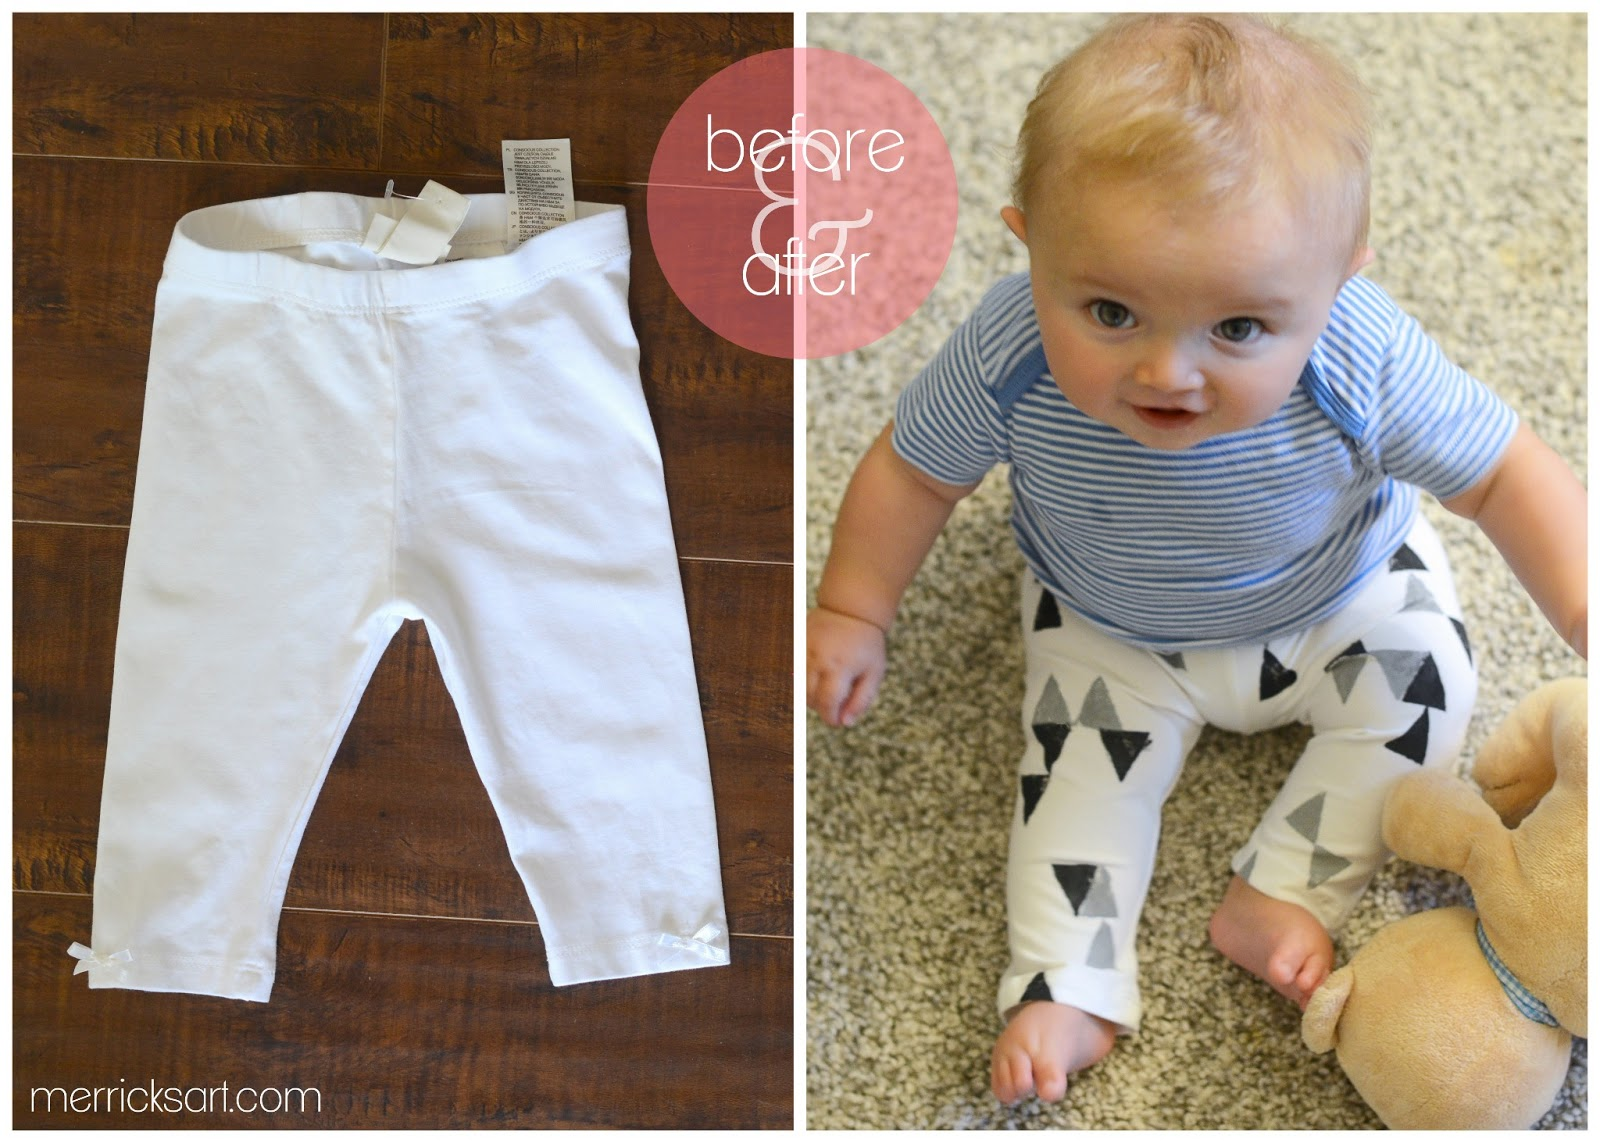 This baby leggings pattern and tutorial gives you the option of using a one piece pattern for no side seams, or you can use two pieces for side seams! Side seams in baby leggings are wonderful for the placement of ruffles and for when you are recycling clothing into baby leggings.